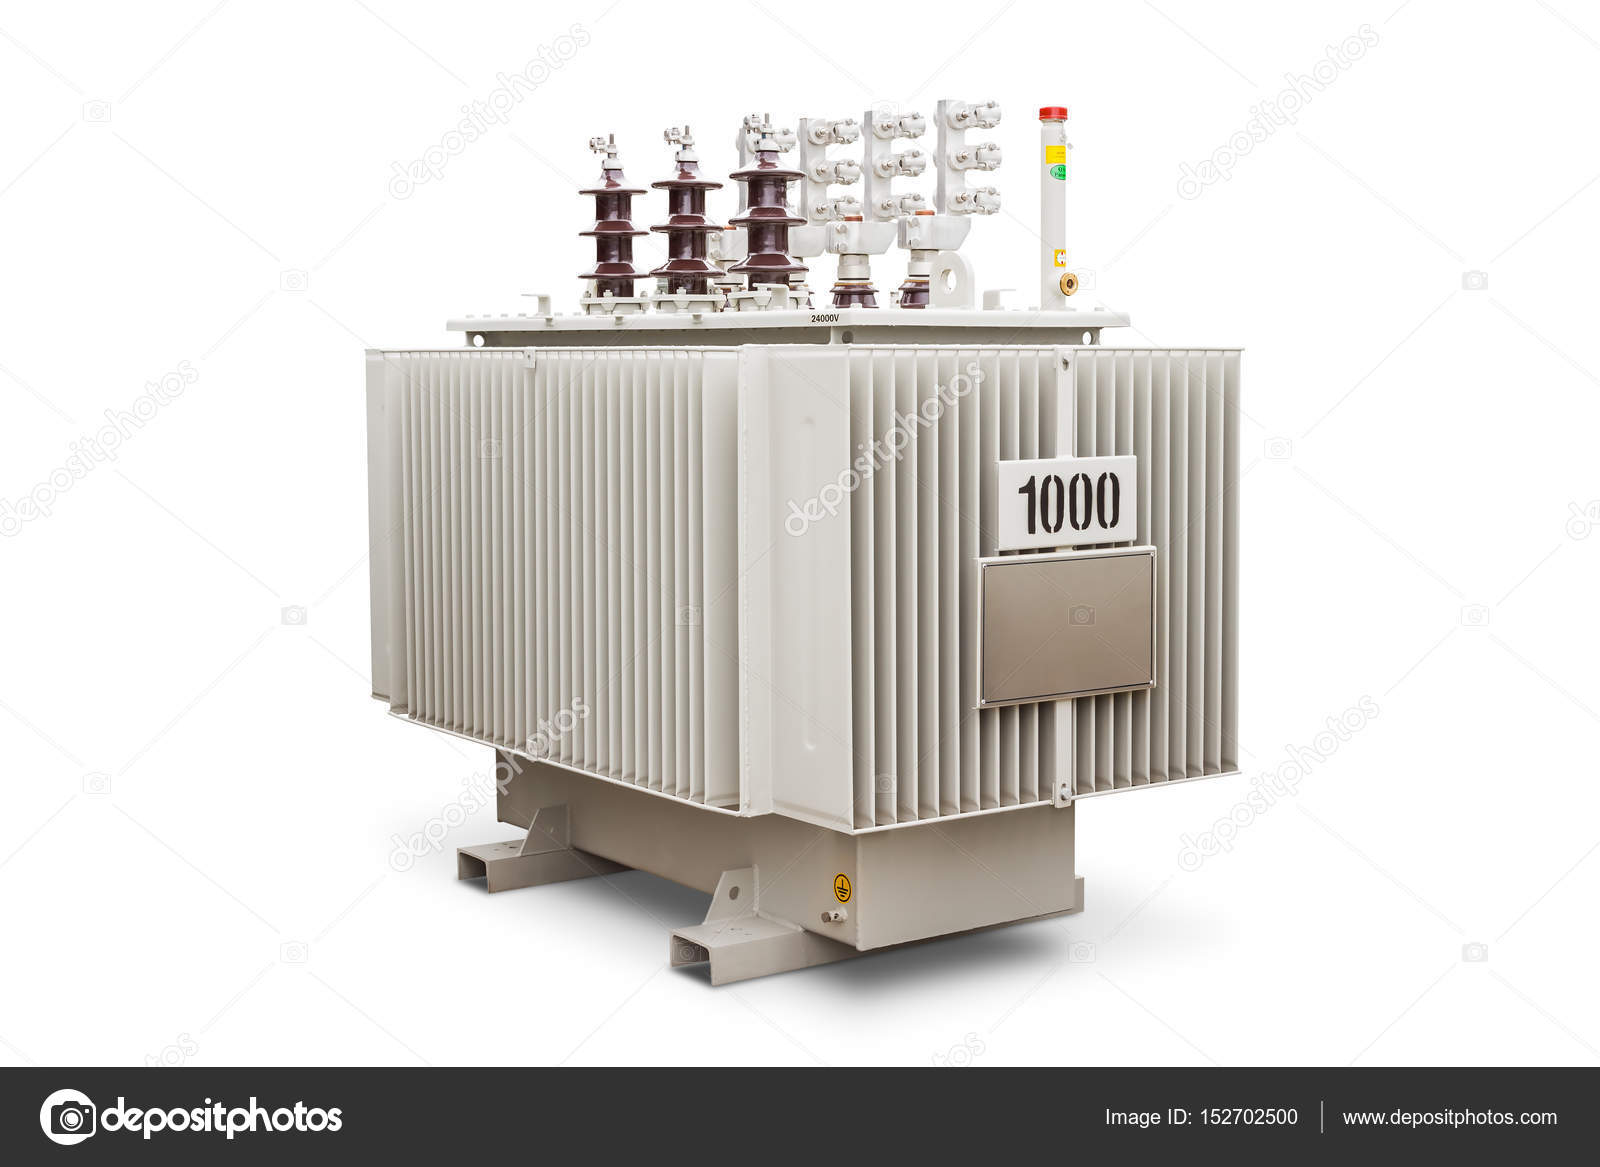 Oil immersed transformer — Stock Photo © teptong #152702500